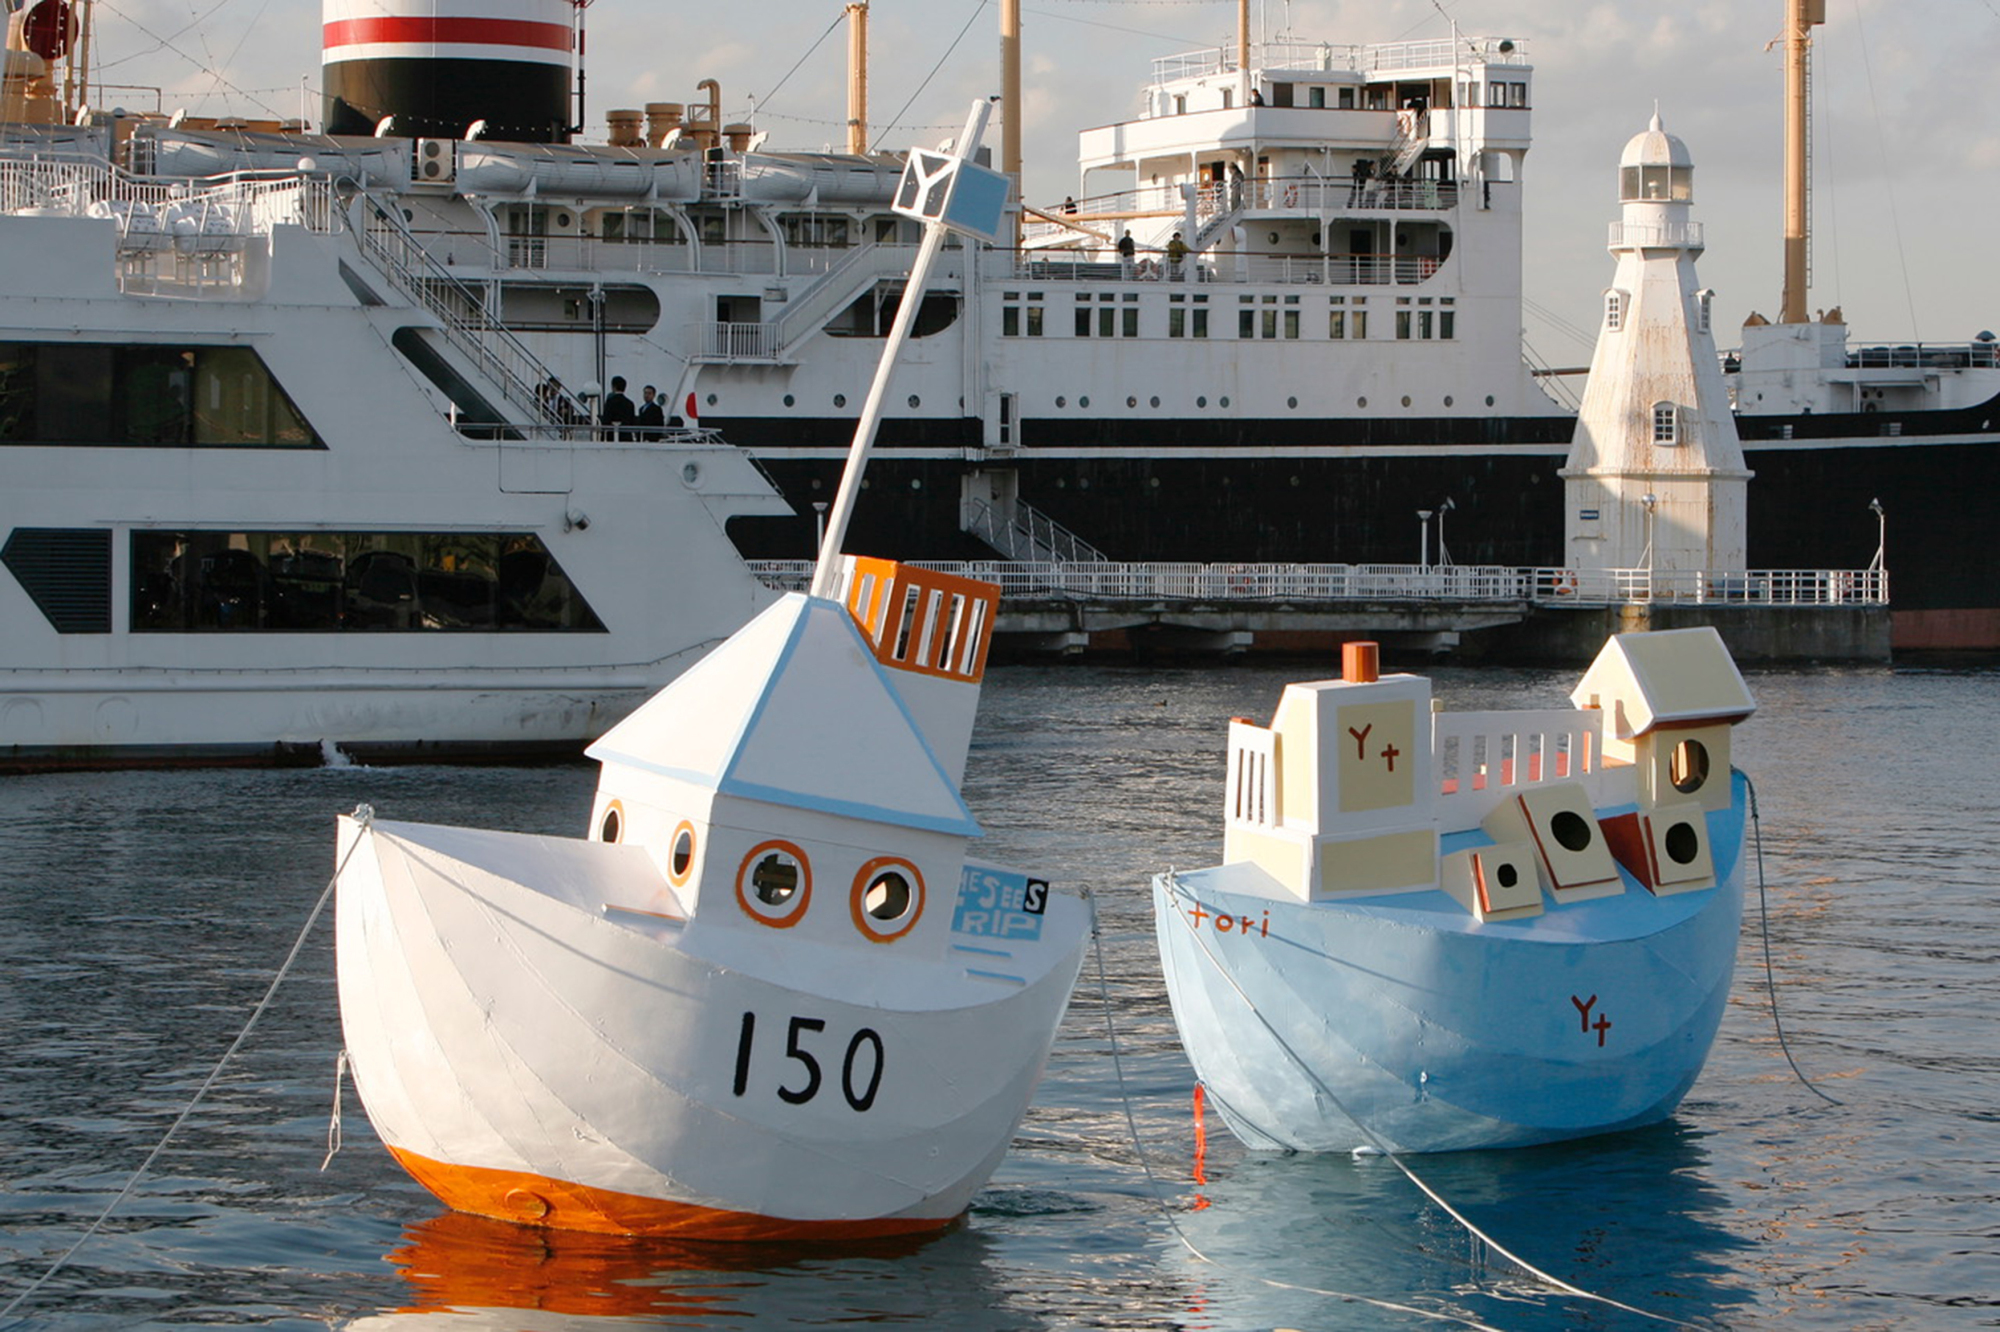 Katsuhiko Hibino's 'The Seed is a Ship Y150maru' (left, 2008), 'The Seed is a Ship Yokotorimaru' (right, 2008)